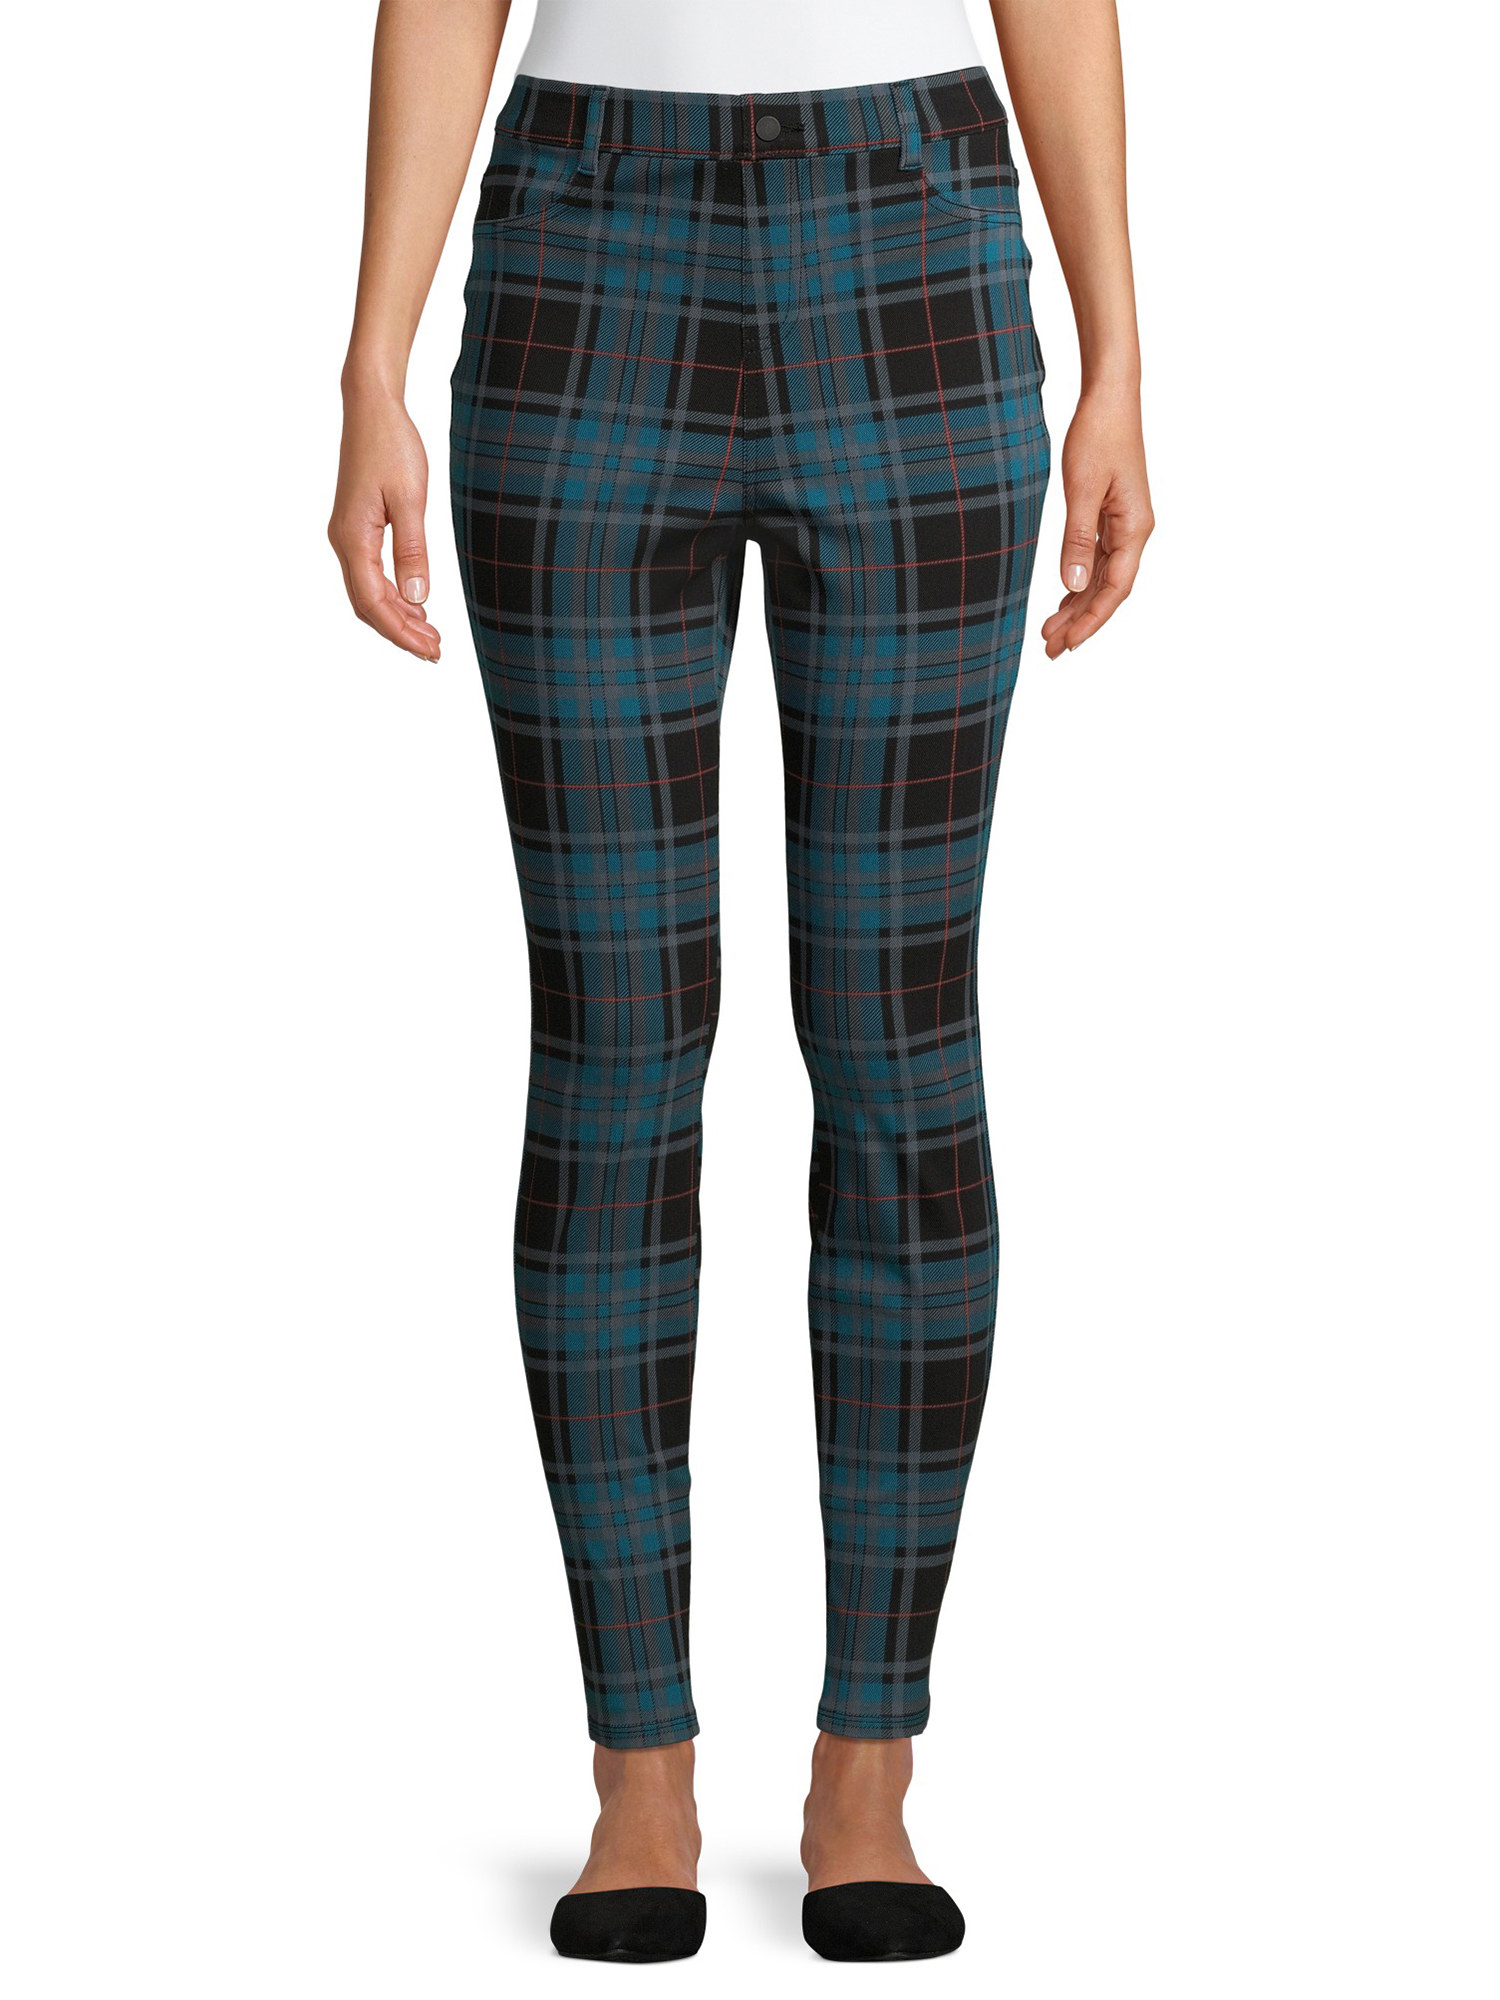 Model wearing plaid pants.